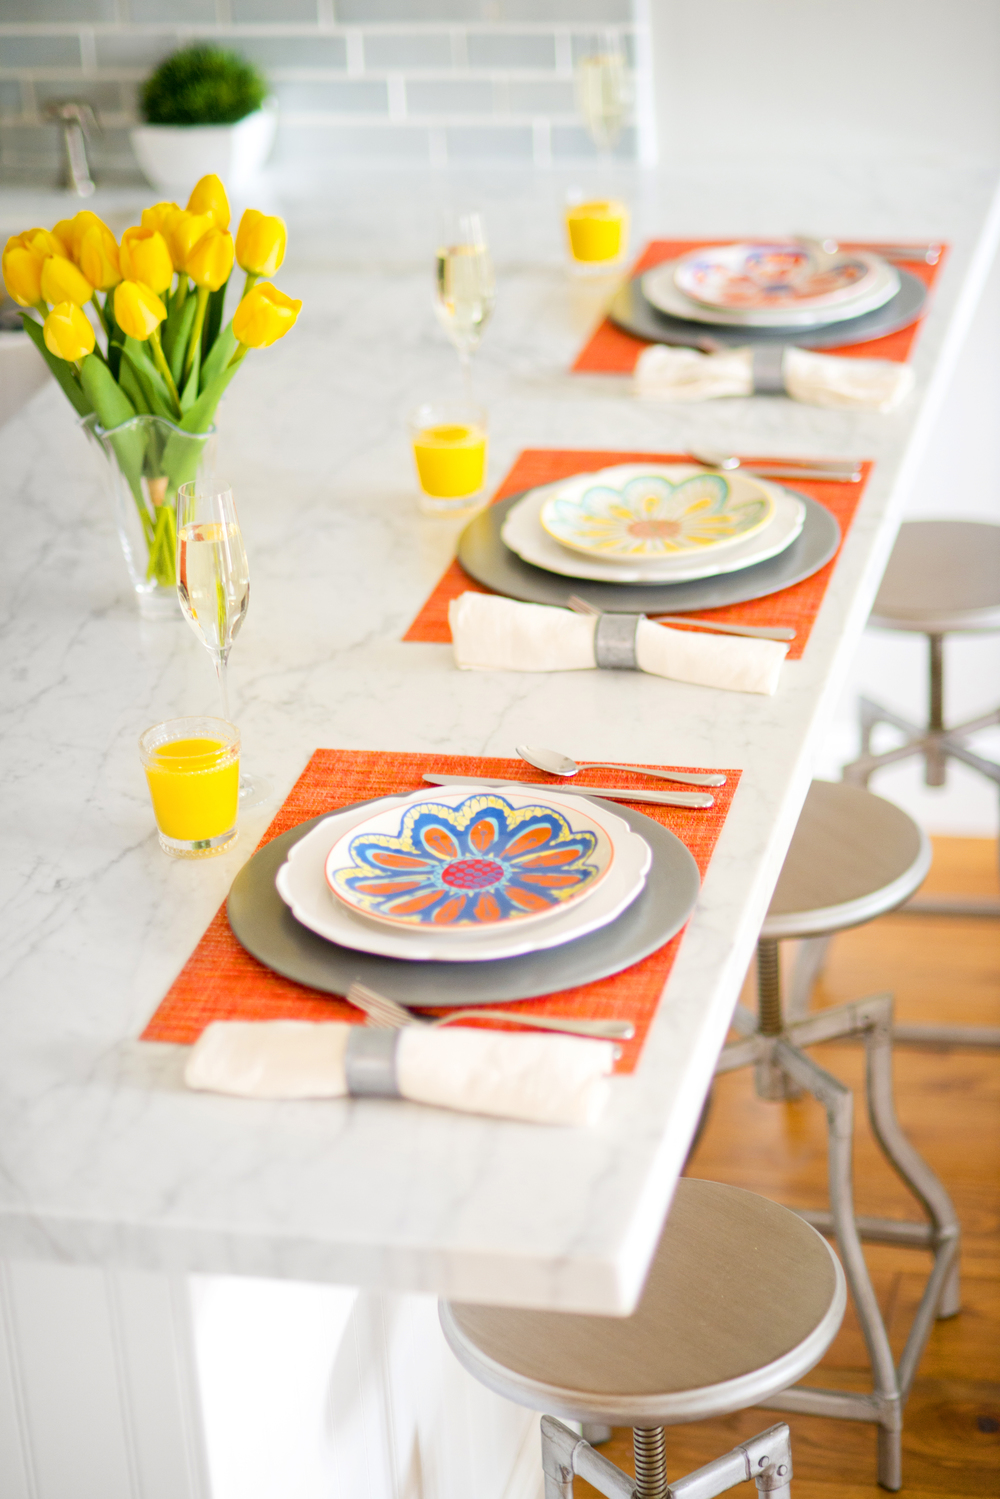 Sun-Kissed Spring Breakfast ~ Adoring and swooning over Crate & Barrel's bright colors for the season. All items were provided by Crate & Barrel.